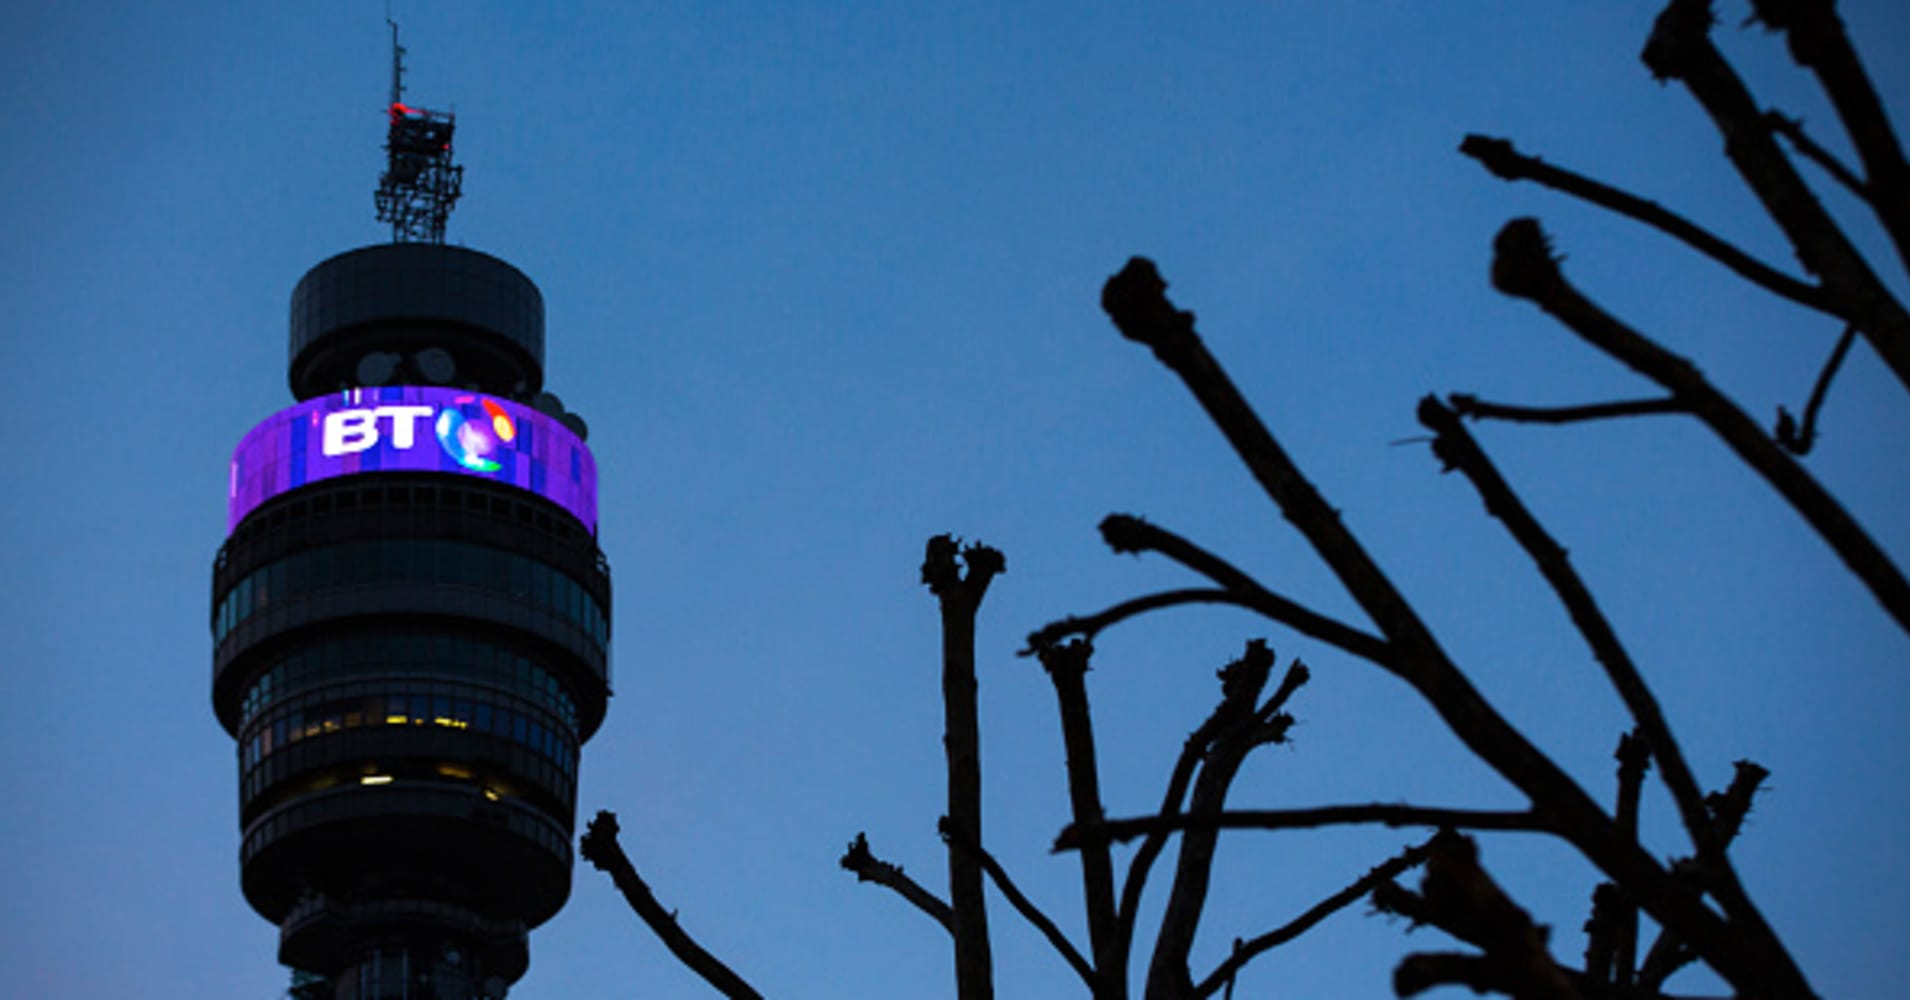 BT fined record £42 million for business-line installation errors